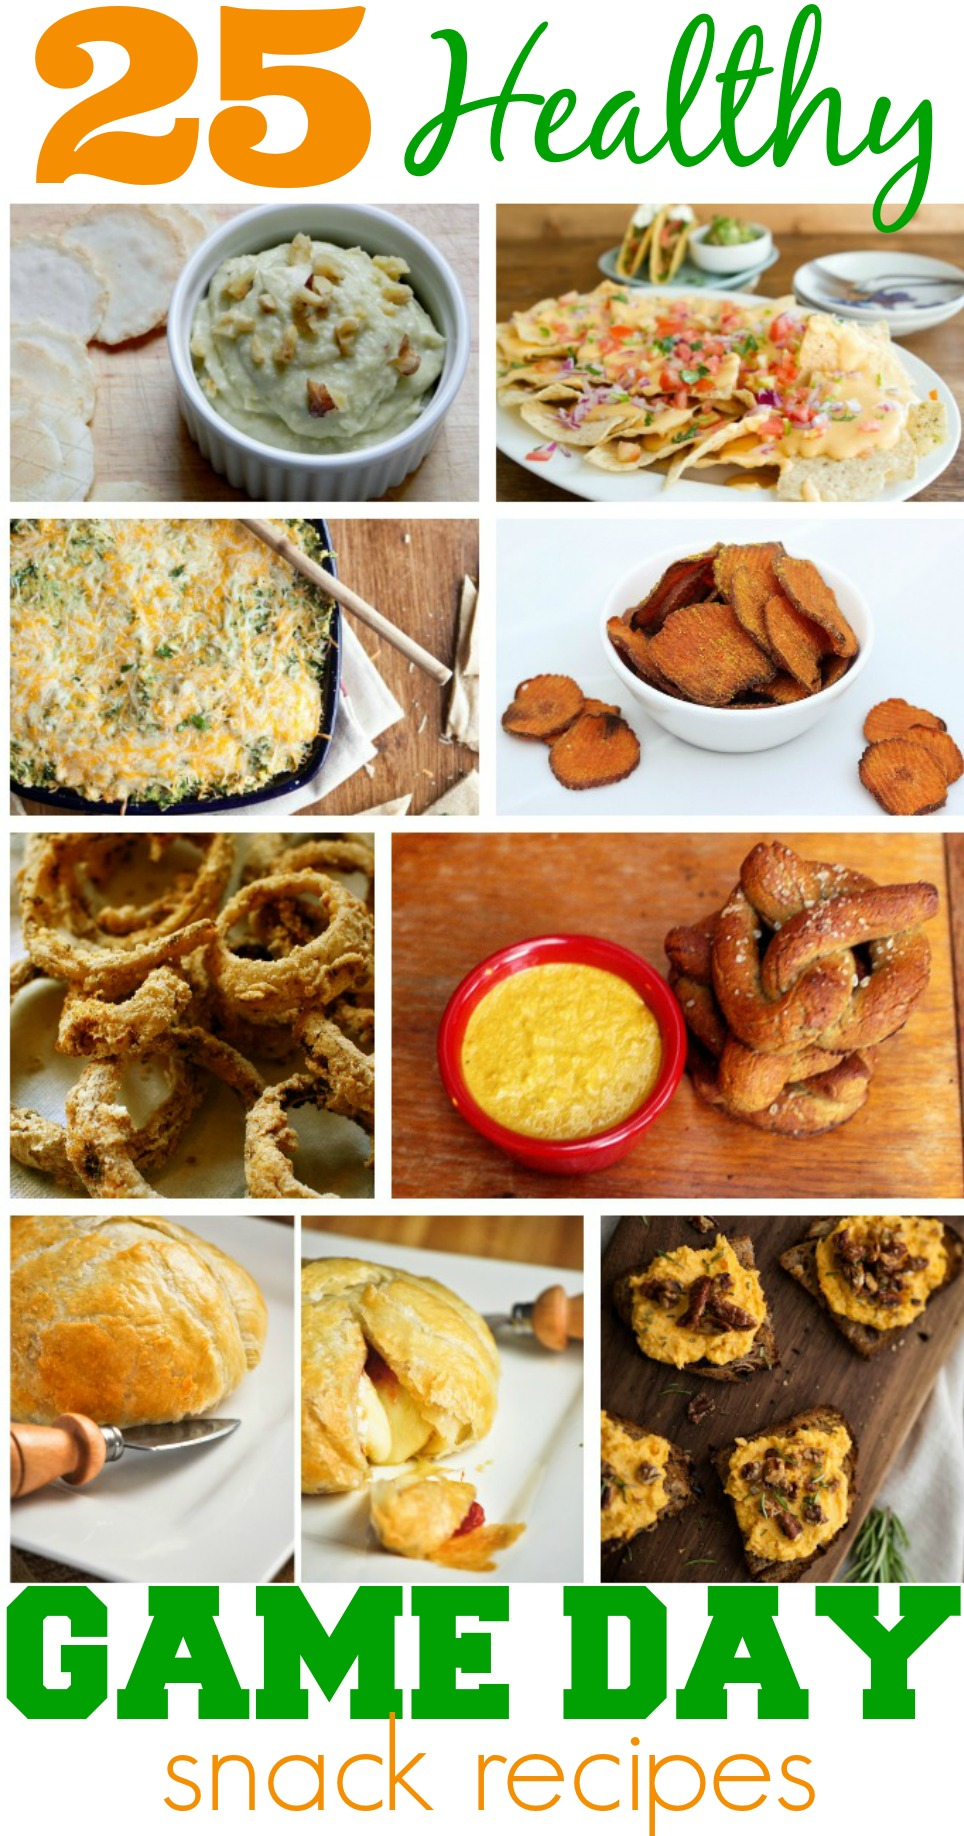 25 healthy game day snack recipes perfect for the super bowl 25 healthy game day recipes perfect for superbowl sunday the coupon project forumfinder Choice Image